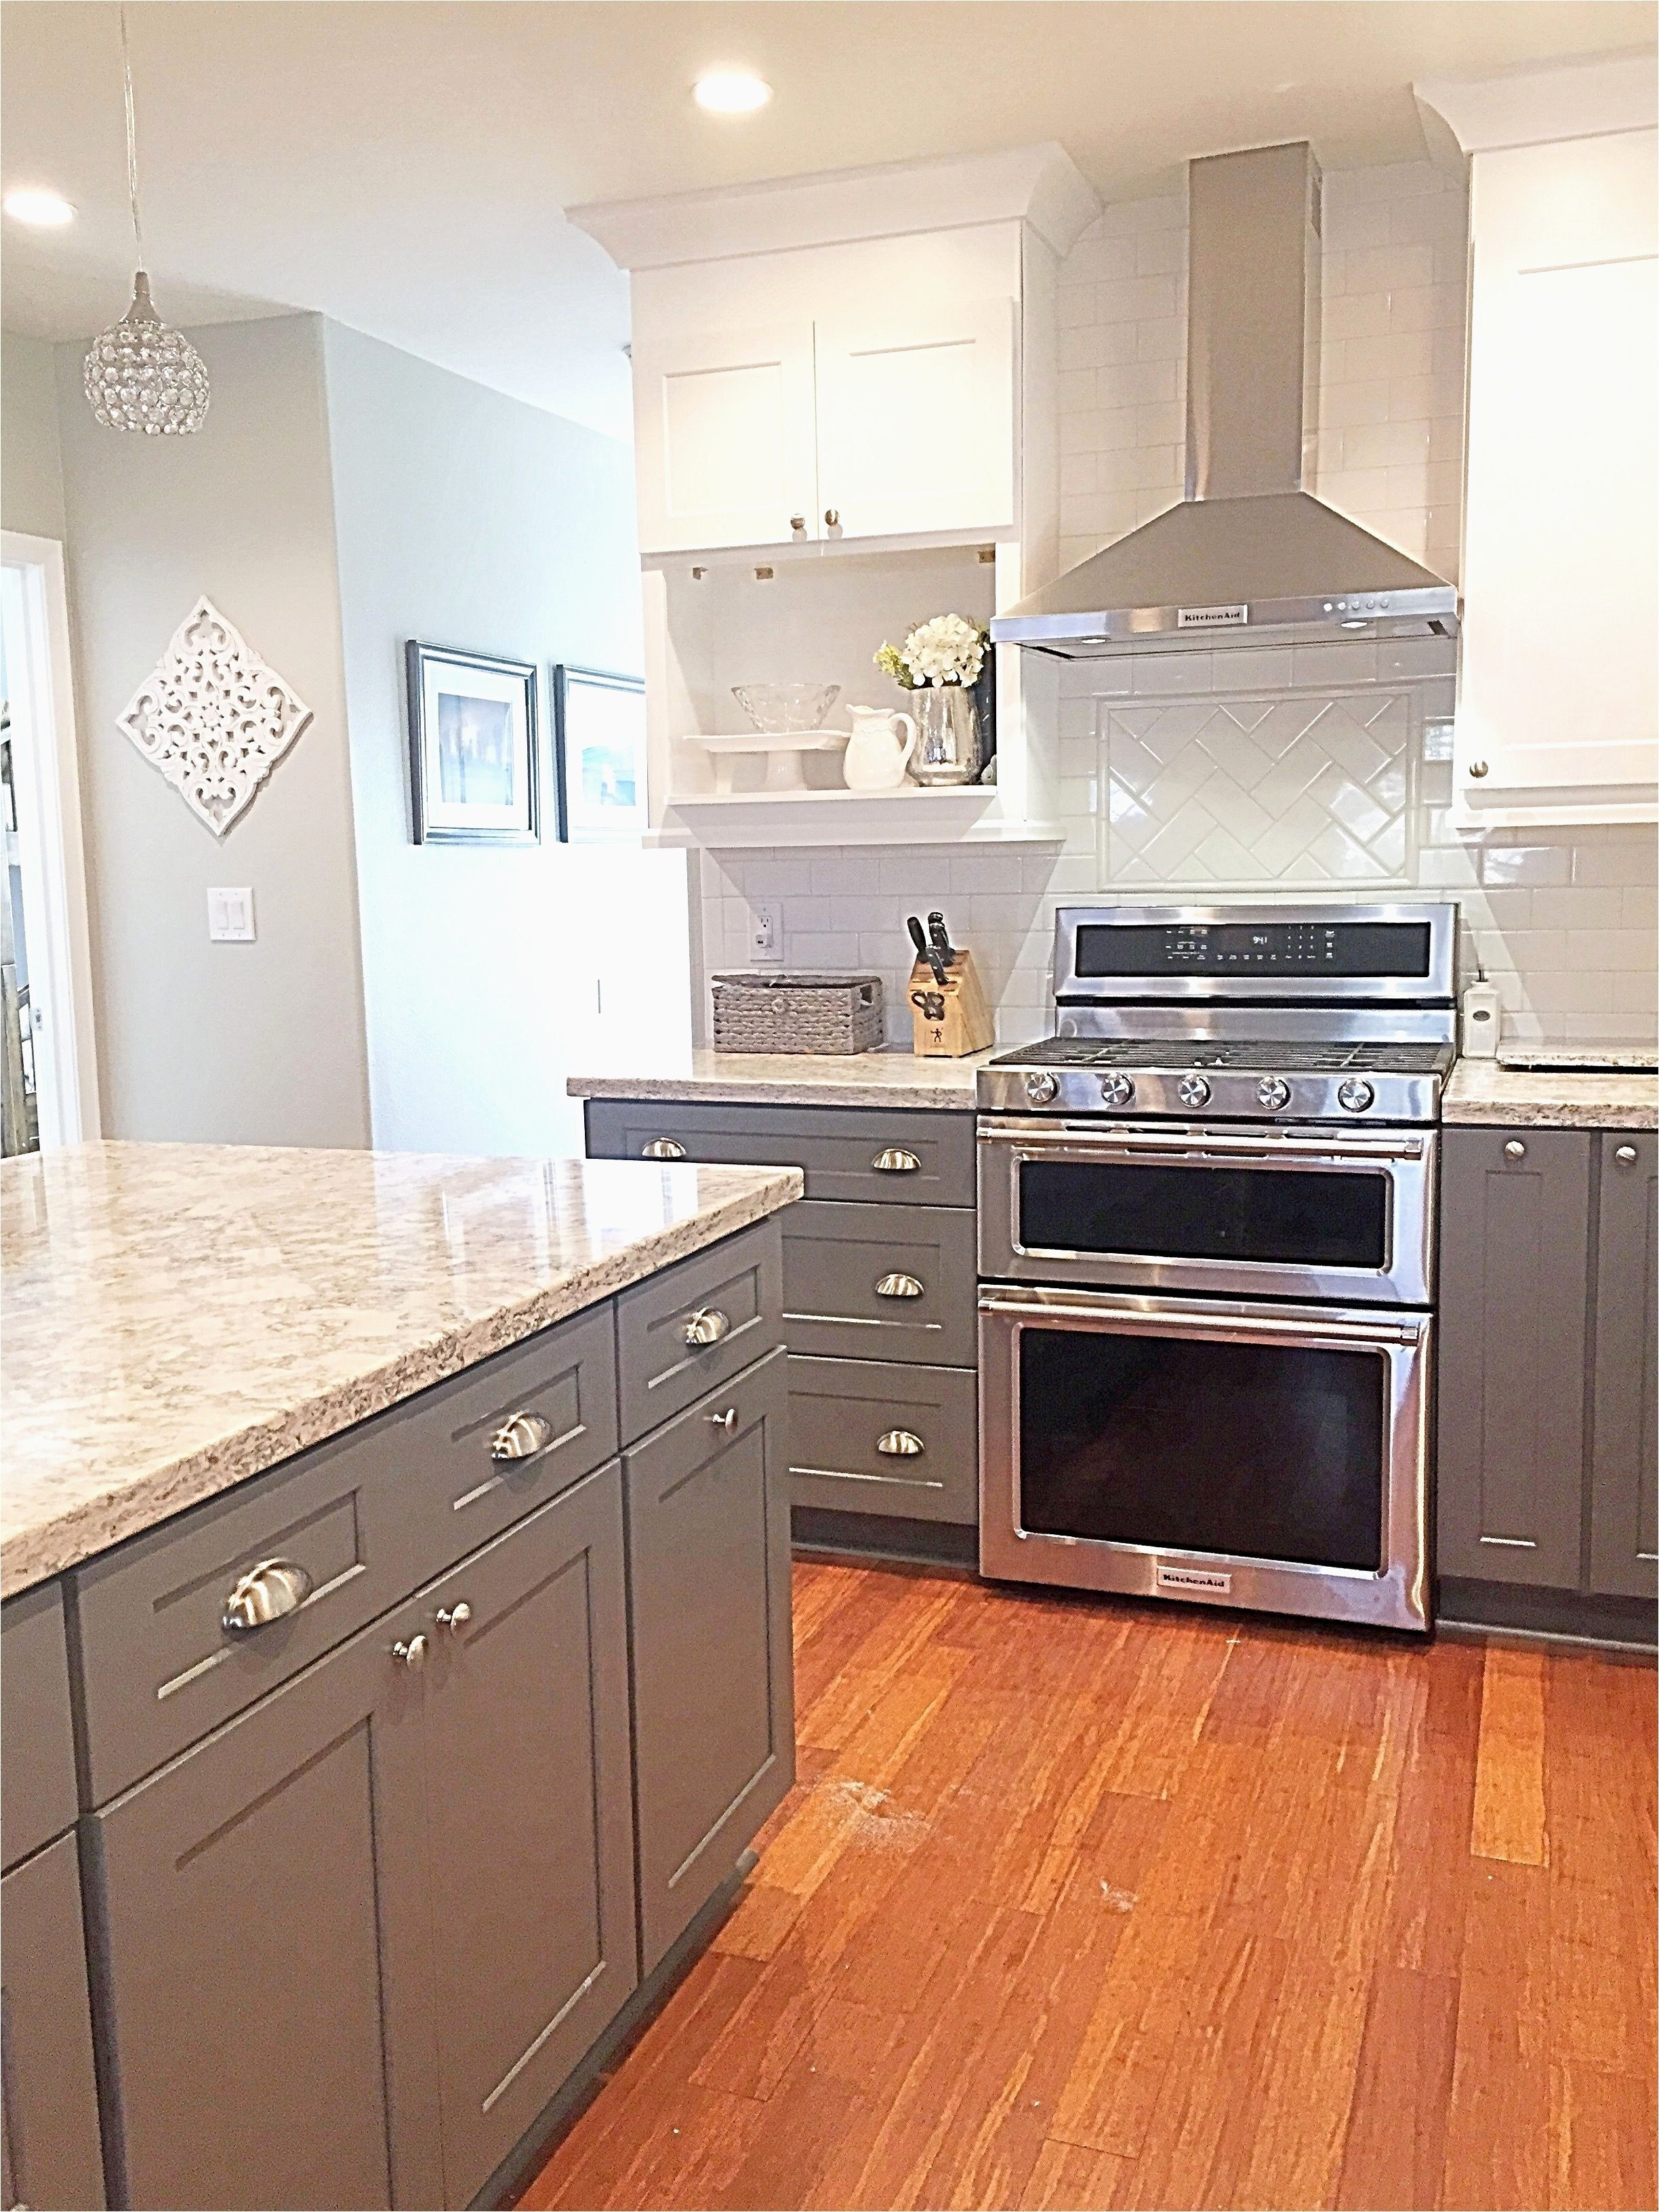 hardwood floor mop lowes of 15 best of lowes kitchen designer images dizpos com with lowes kitchen designer new 20 beautiful design for kitchen cabinets lowes showroom gallery of 15 best